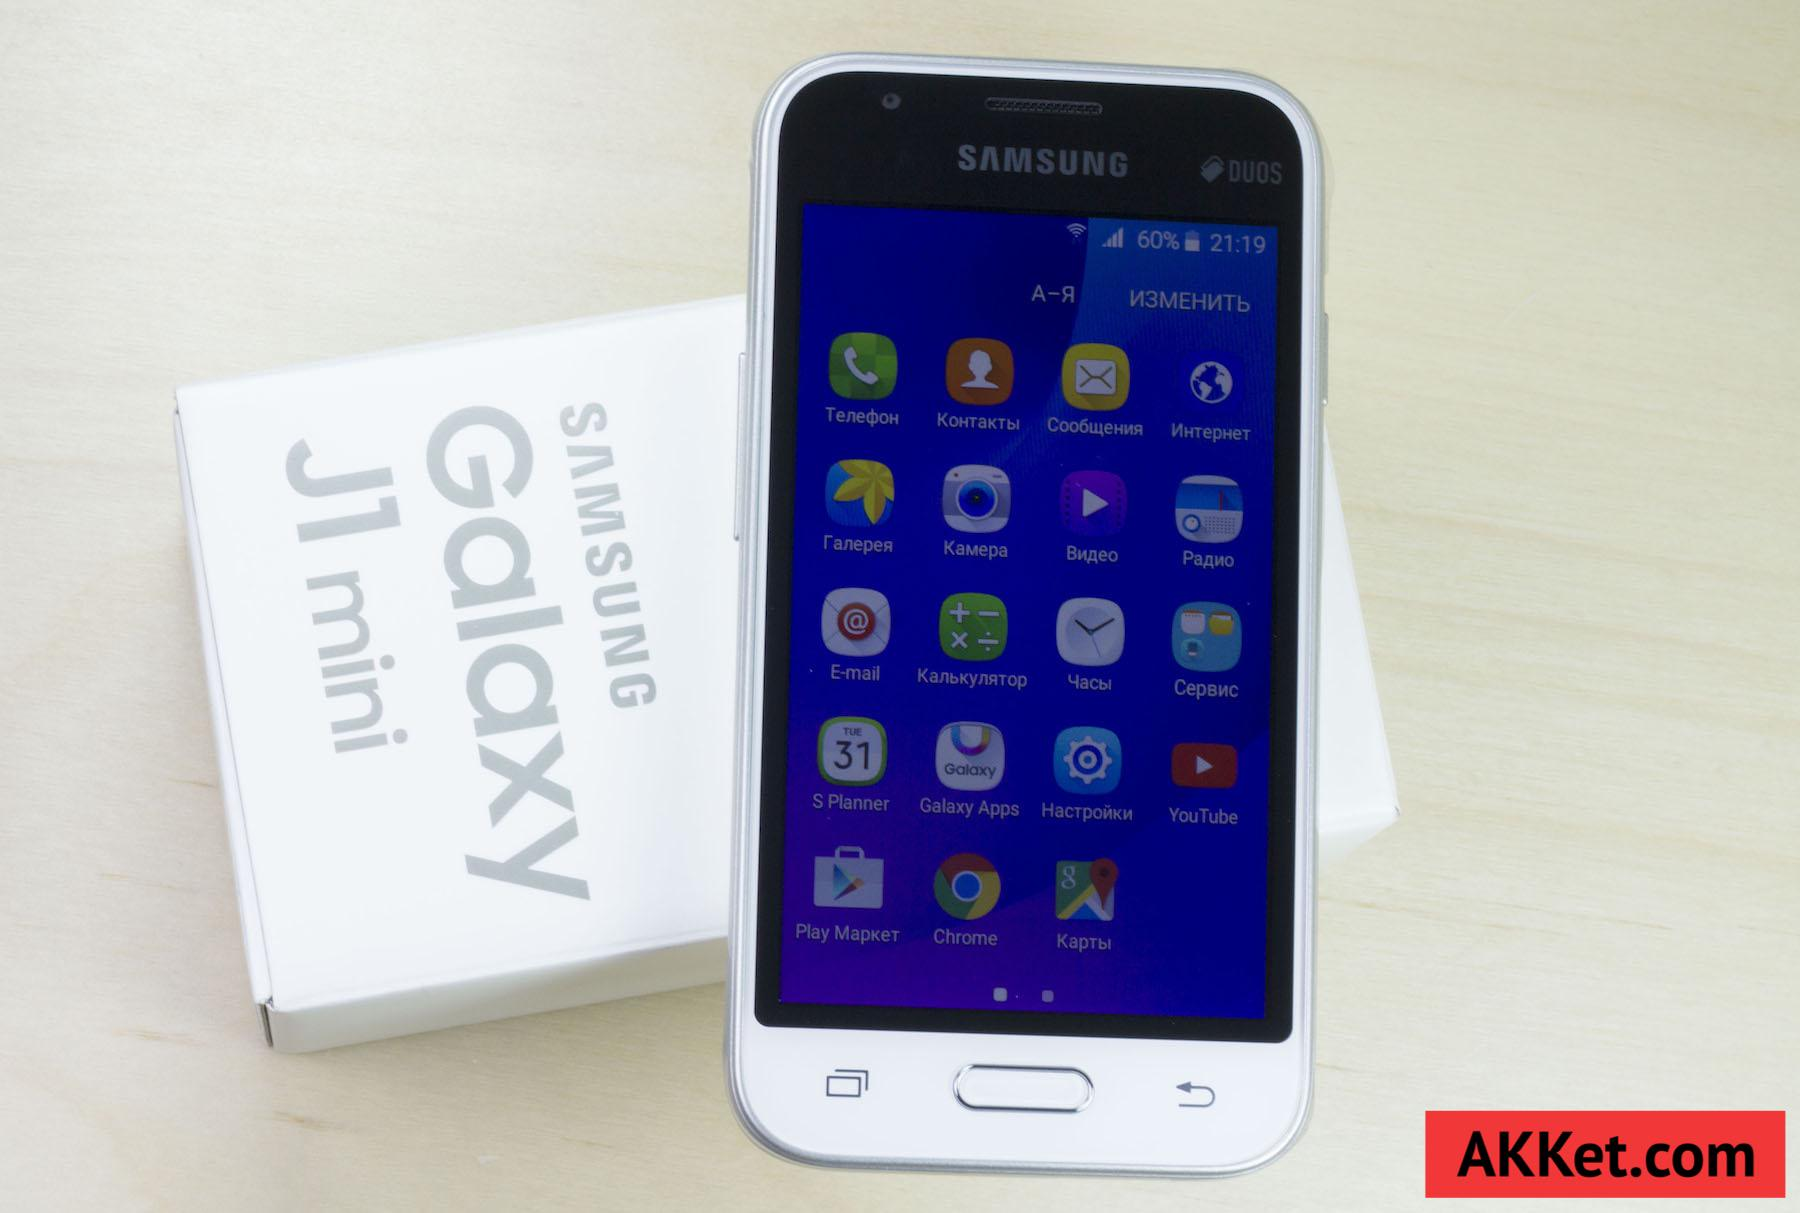 Samsung Galaxy J1 mini Duos Android 5.1.1 Lollipop Review 16